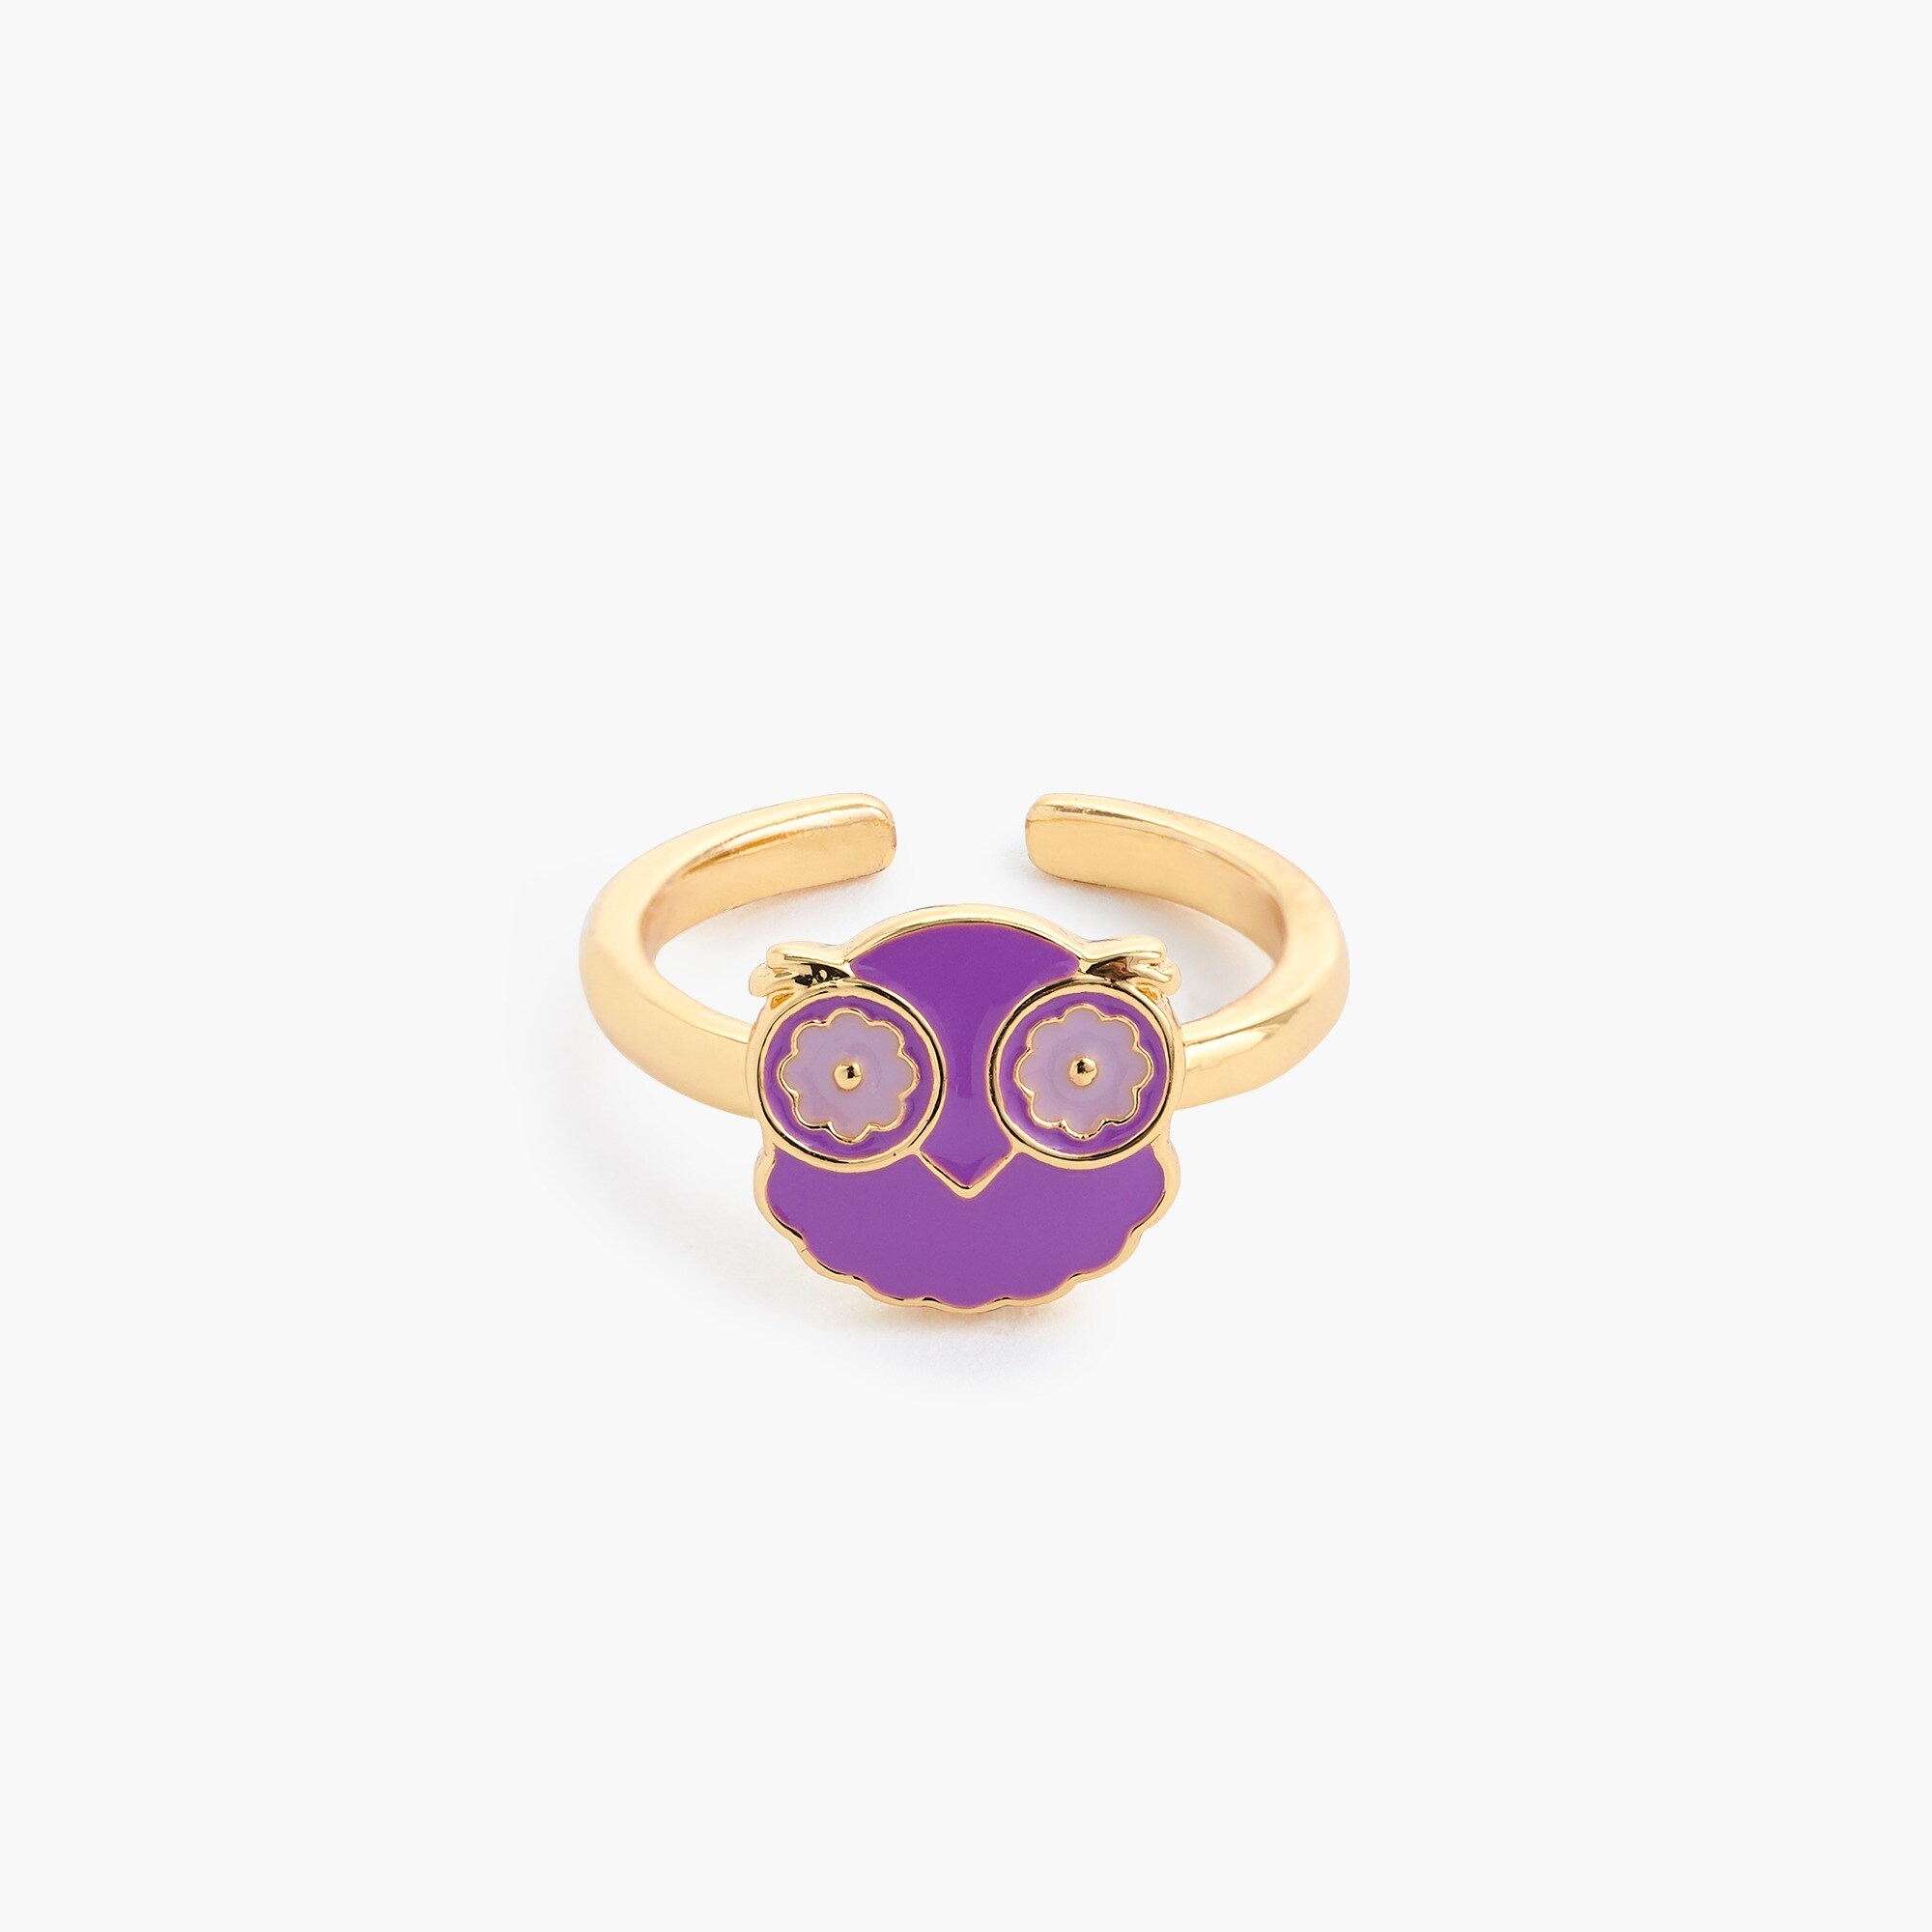 Image 1 for Girls' enamel adjustable rings